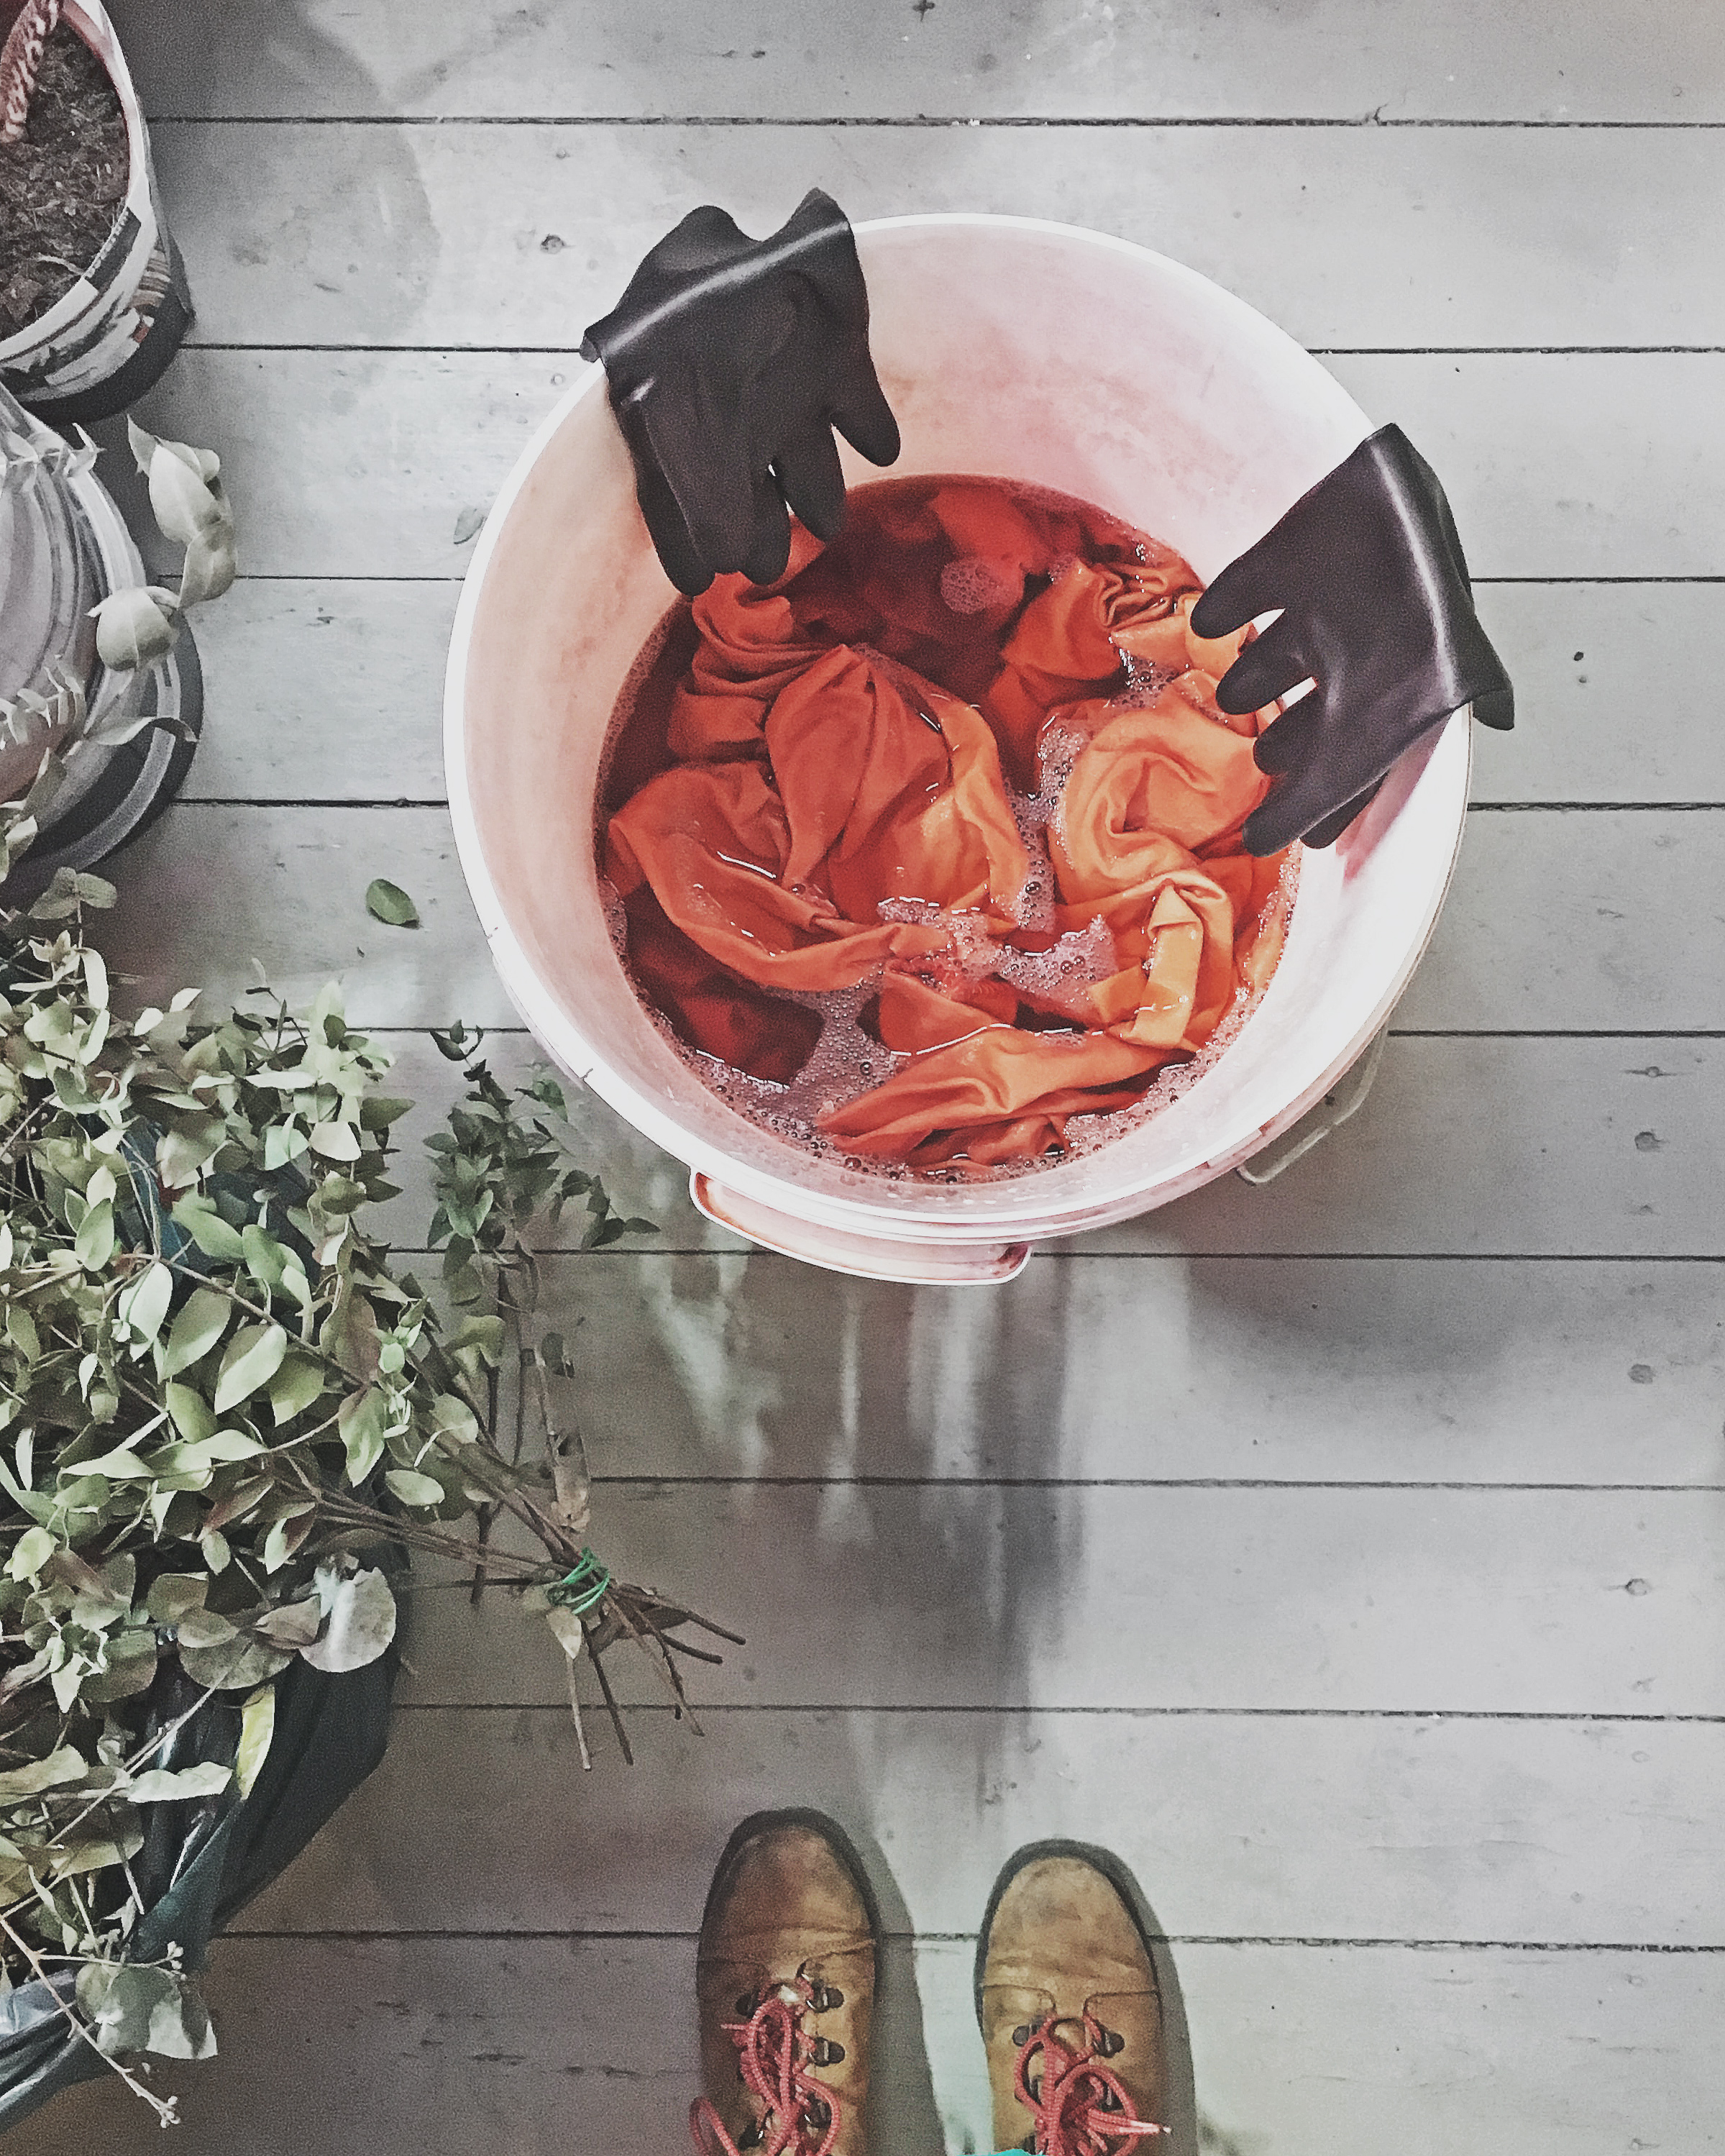 Dyeing with madder - dye kitchen notes for extracting colors from plants #dyeing #plantdye #botanicaldye